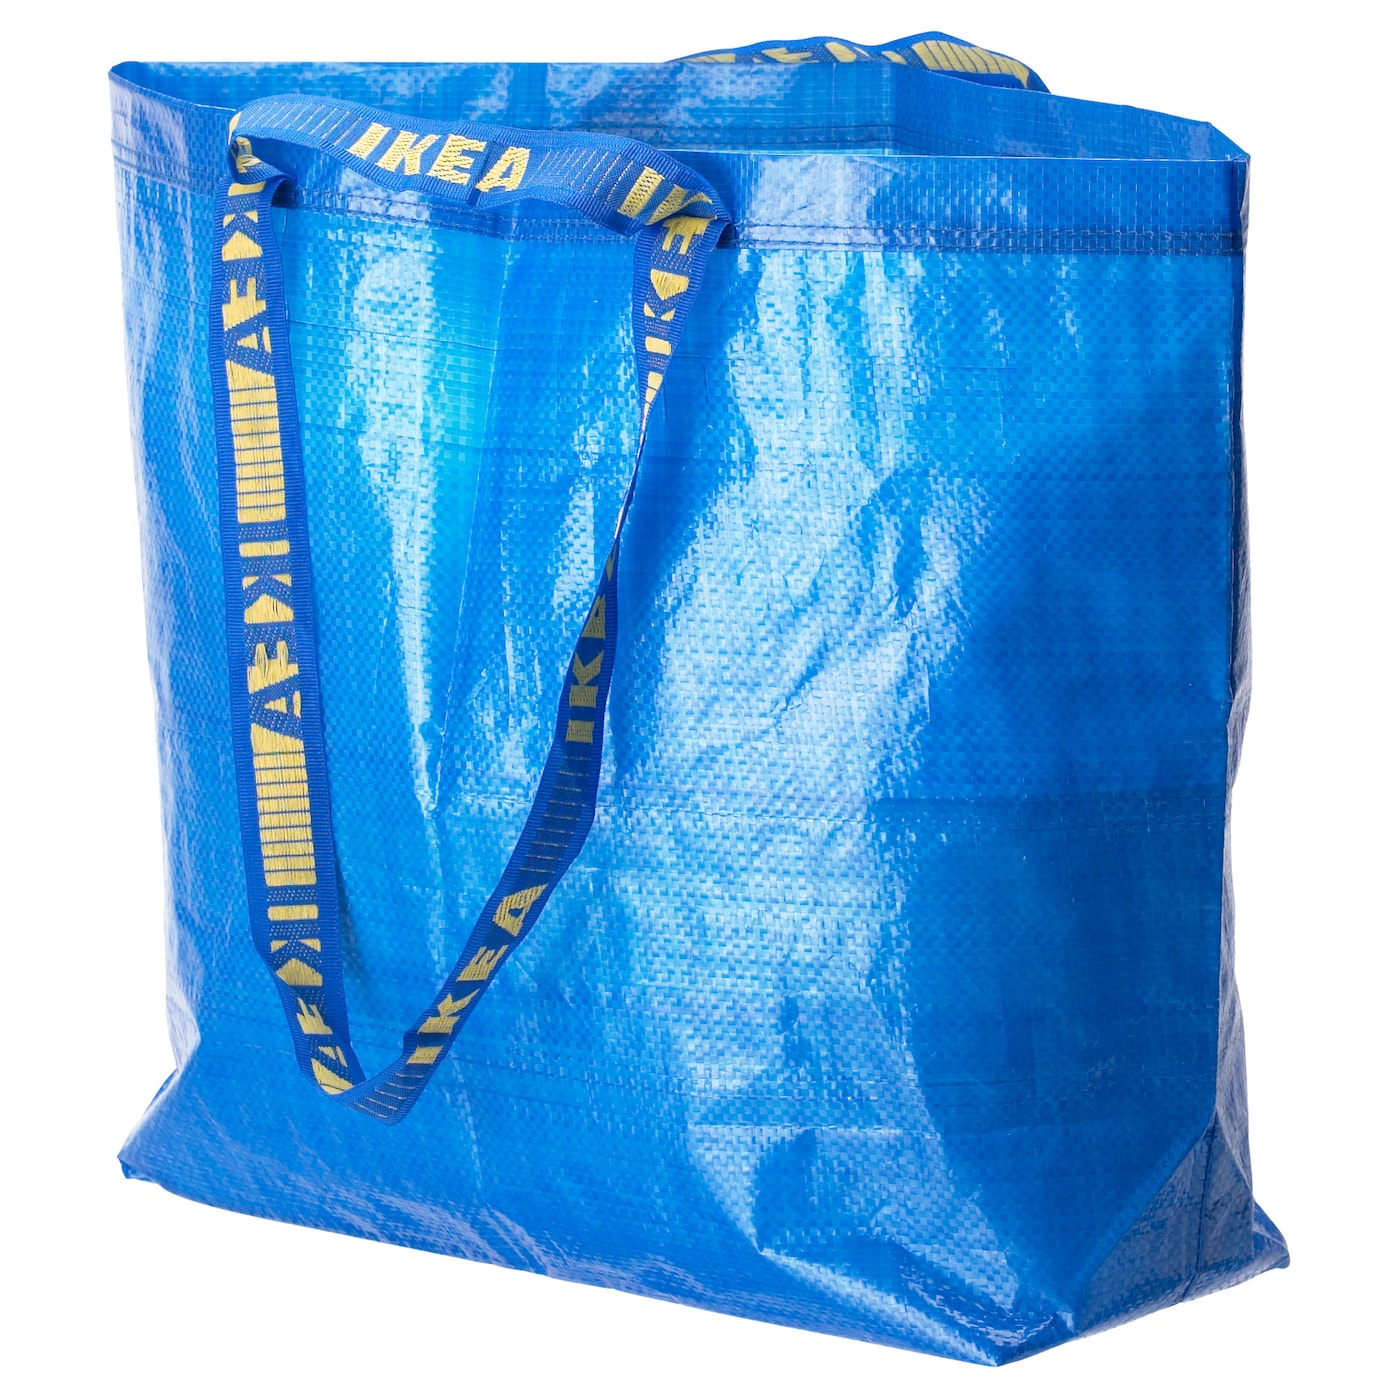 IKEA FRAKTA carrier bag, medium Easy to keep clean – just rinse and dry.